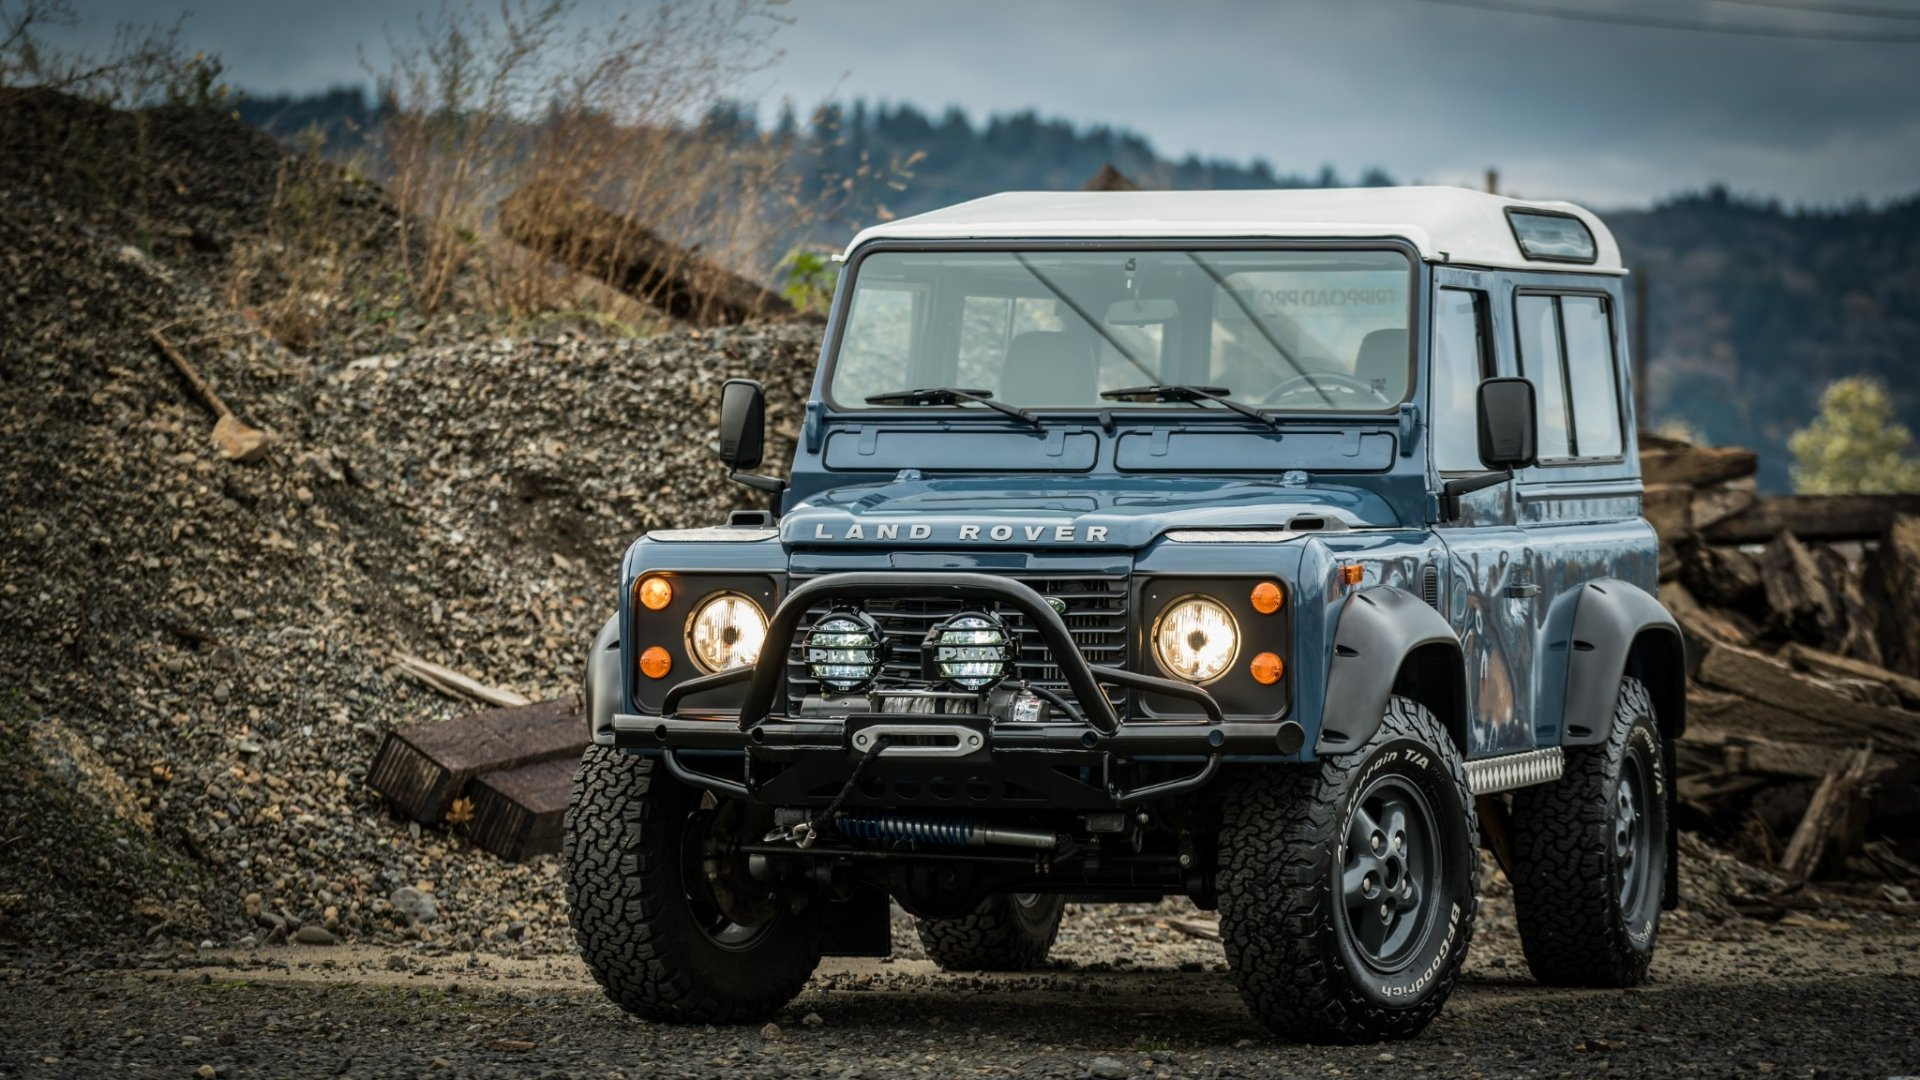 Vehicles - Land Rover Defender  Land Rover Defender 90 Off-Road Old Car Car Blue Car Wallpaper